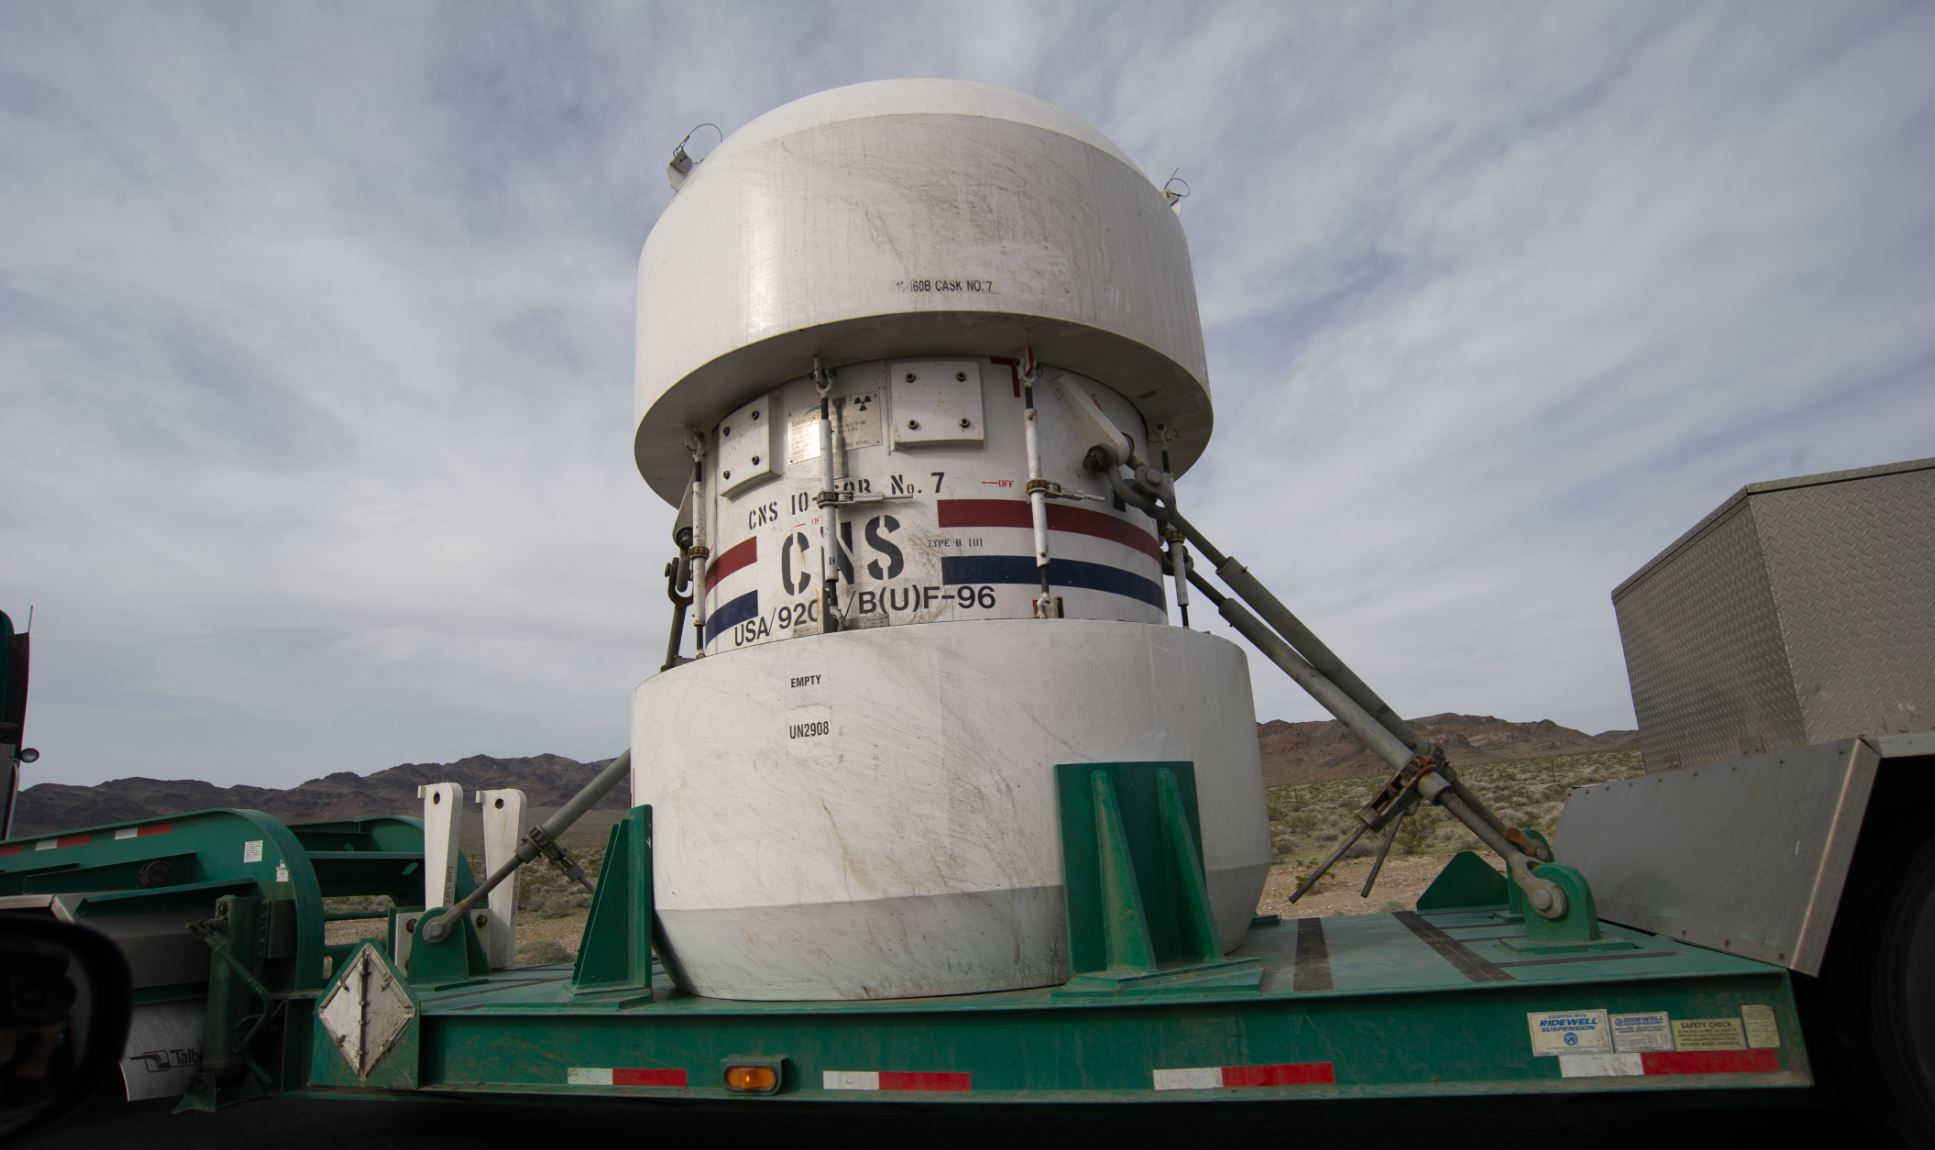 Nuclear Waste Container - Image Credit:  Bill Ebbesen via Wikimedia Commons